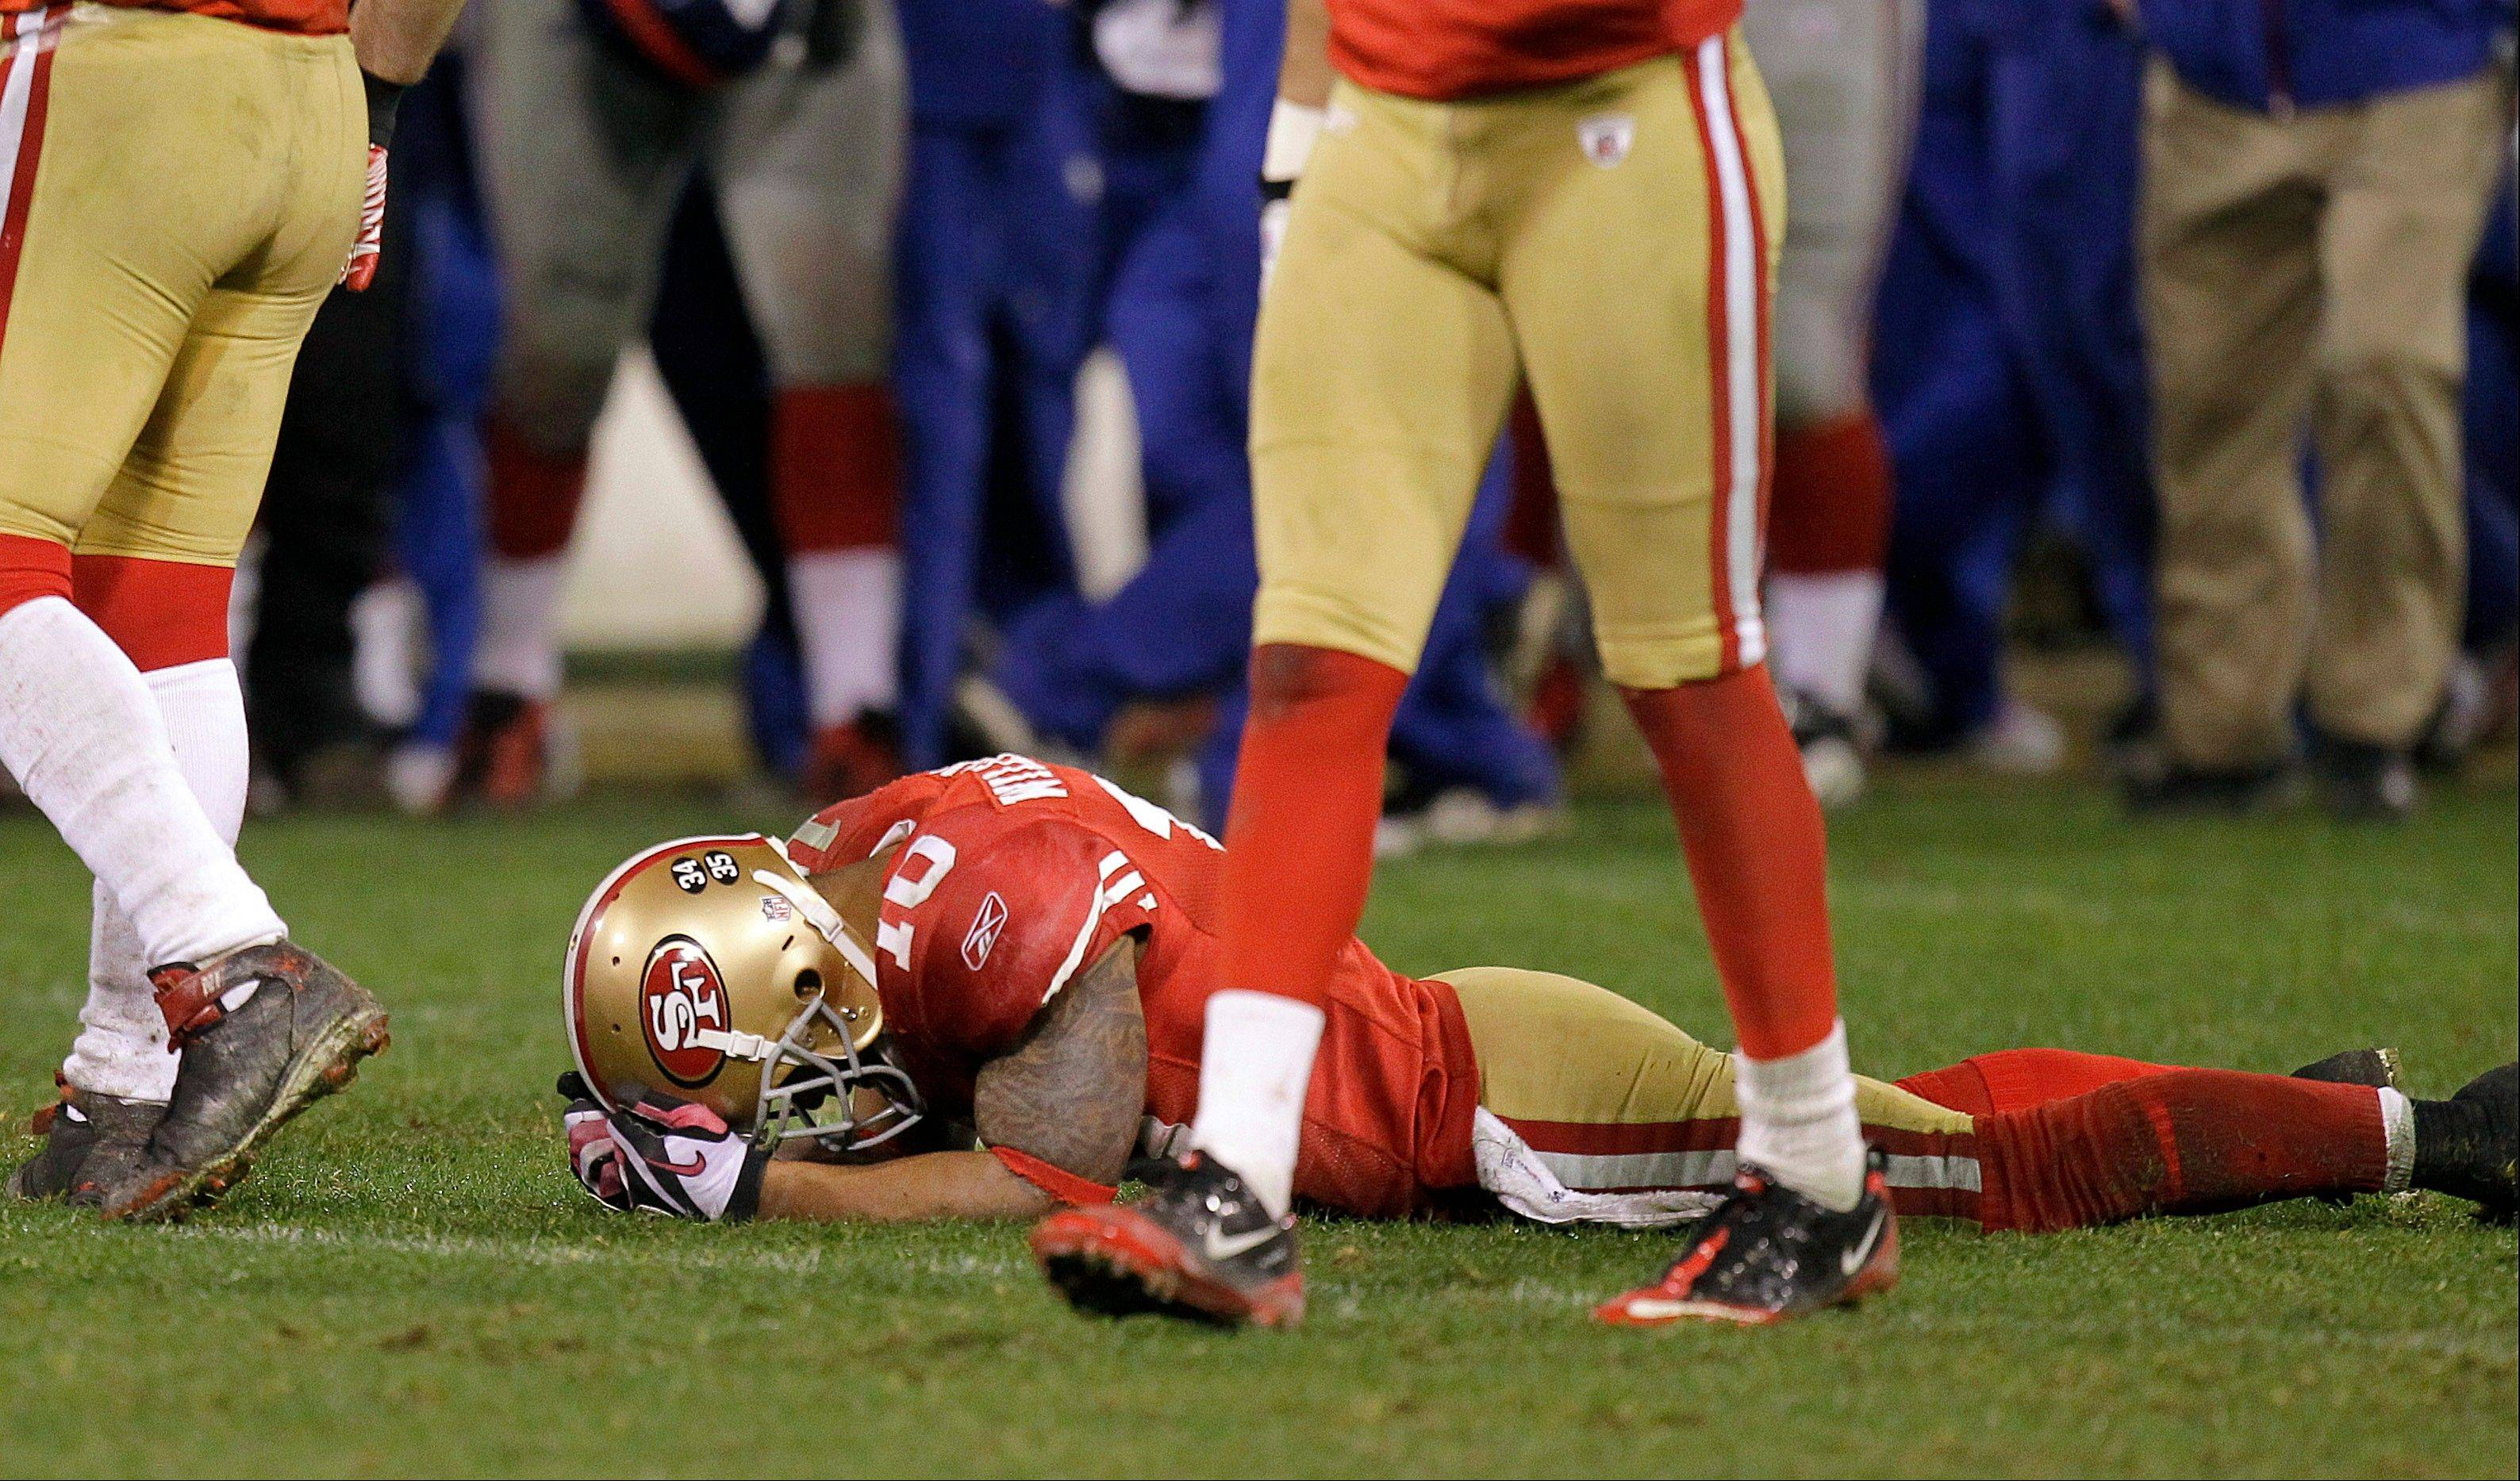 San Francisco 49ers wide receiver Kyle Williams lies on the ground after losing a fumble during overtime of the NFC Championship Game against the New York Giants in 2012.